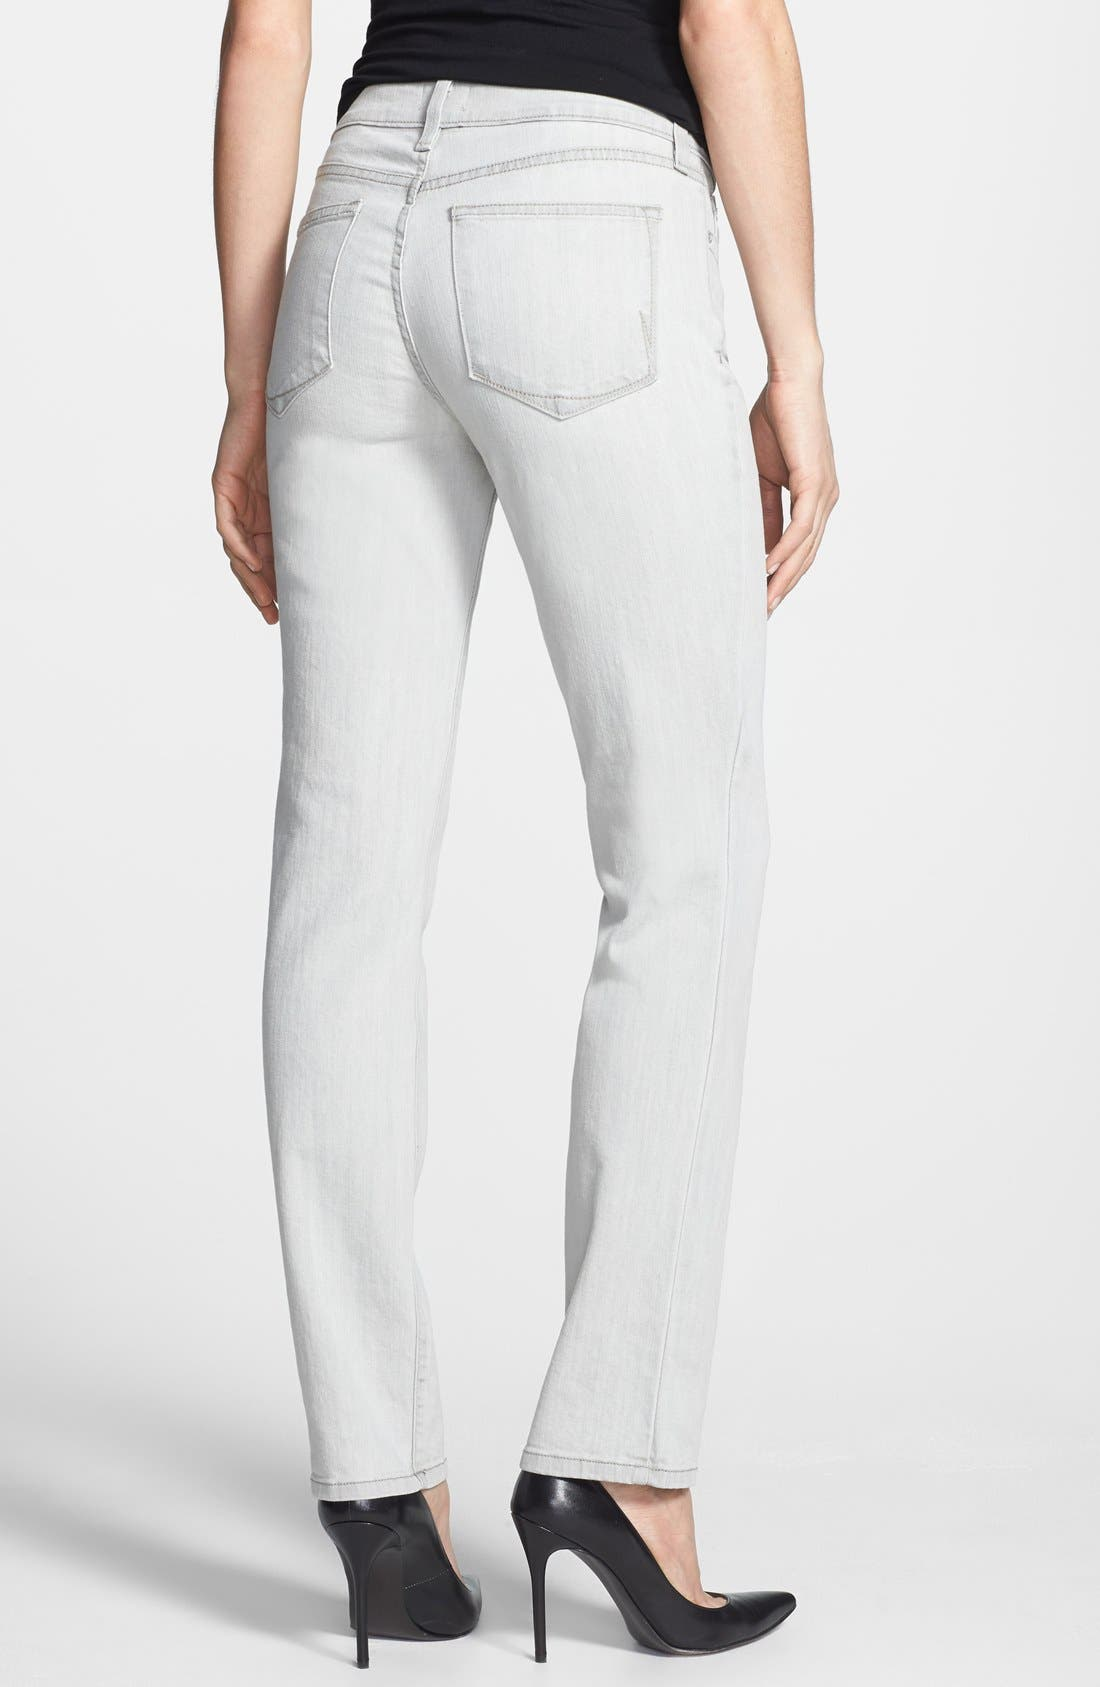 Alternate Image 2  - NYDJ 'Clarissa' Fitted Stretch Ankle Skinny Jeans (Salt Spring)